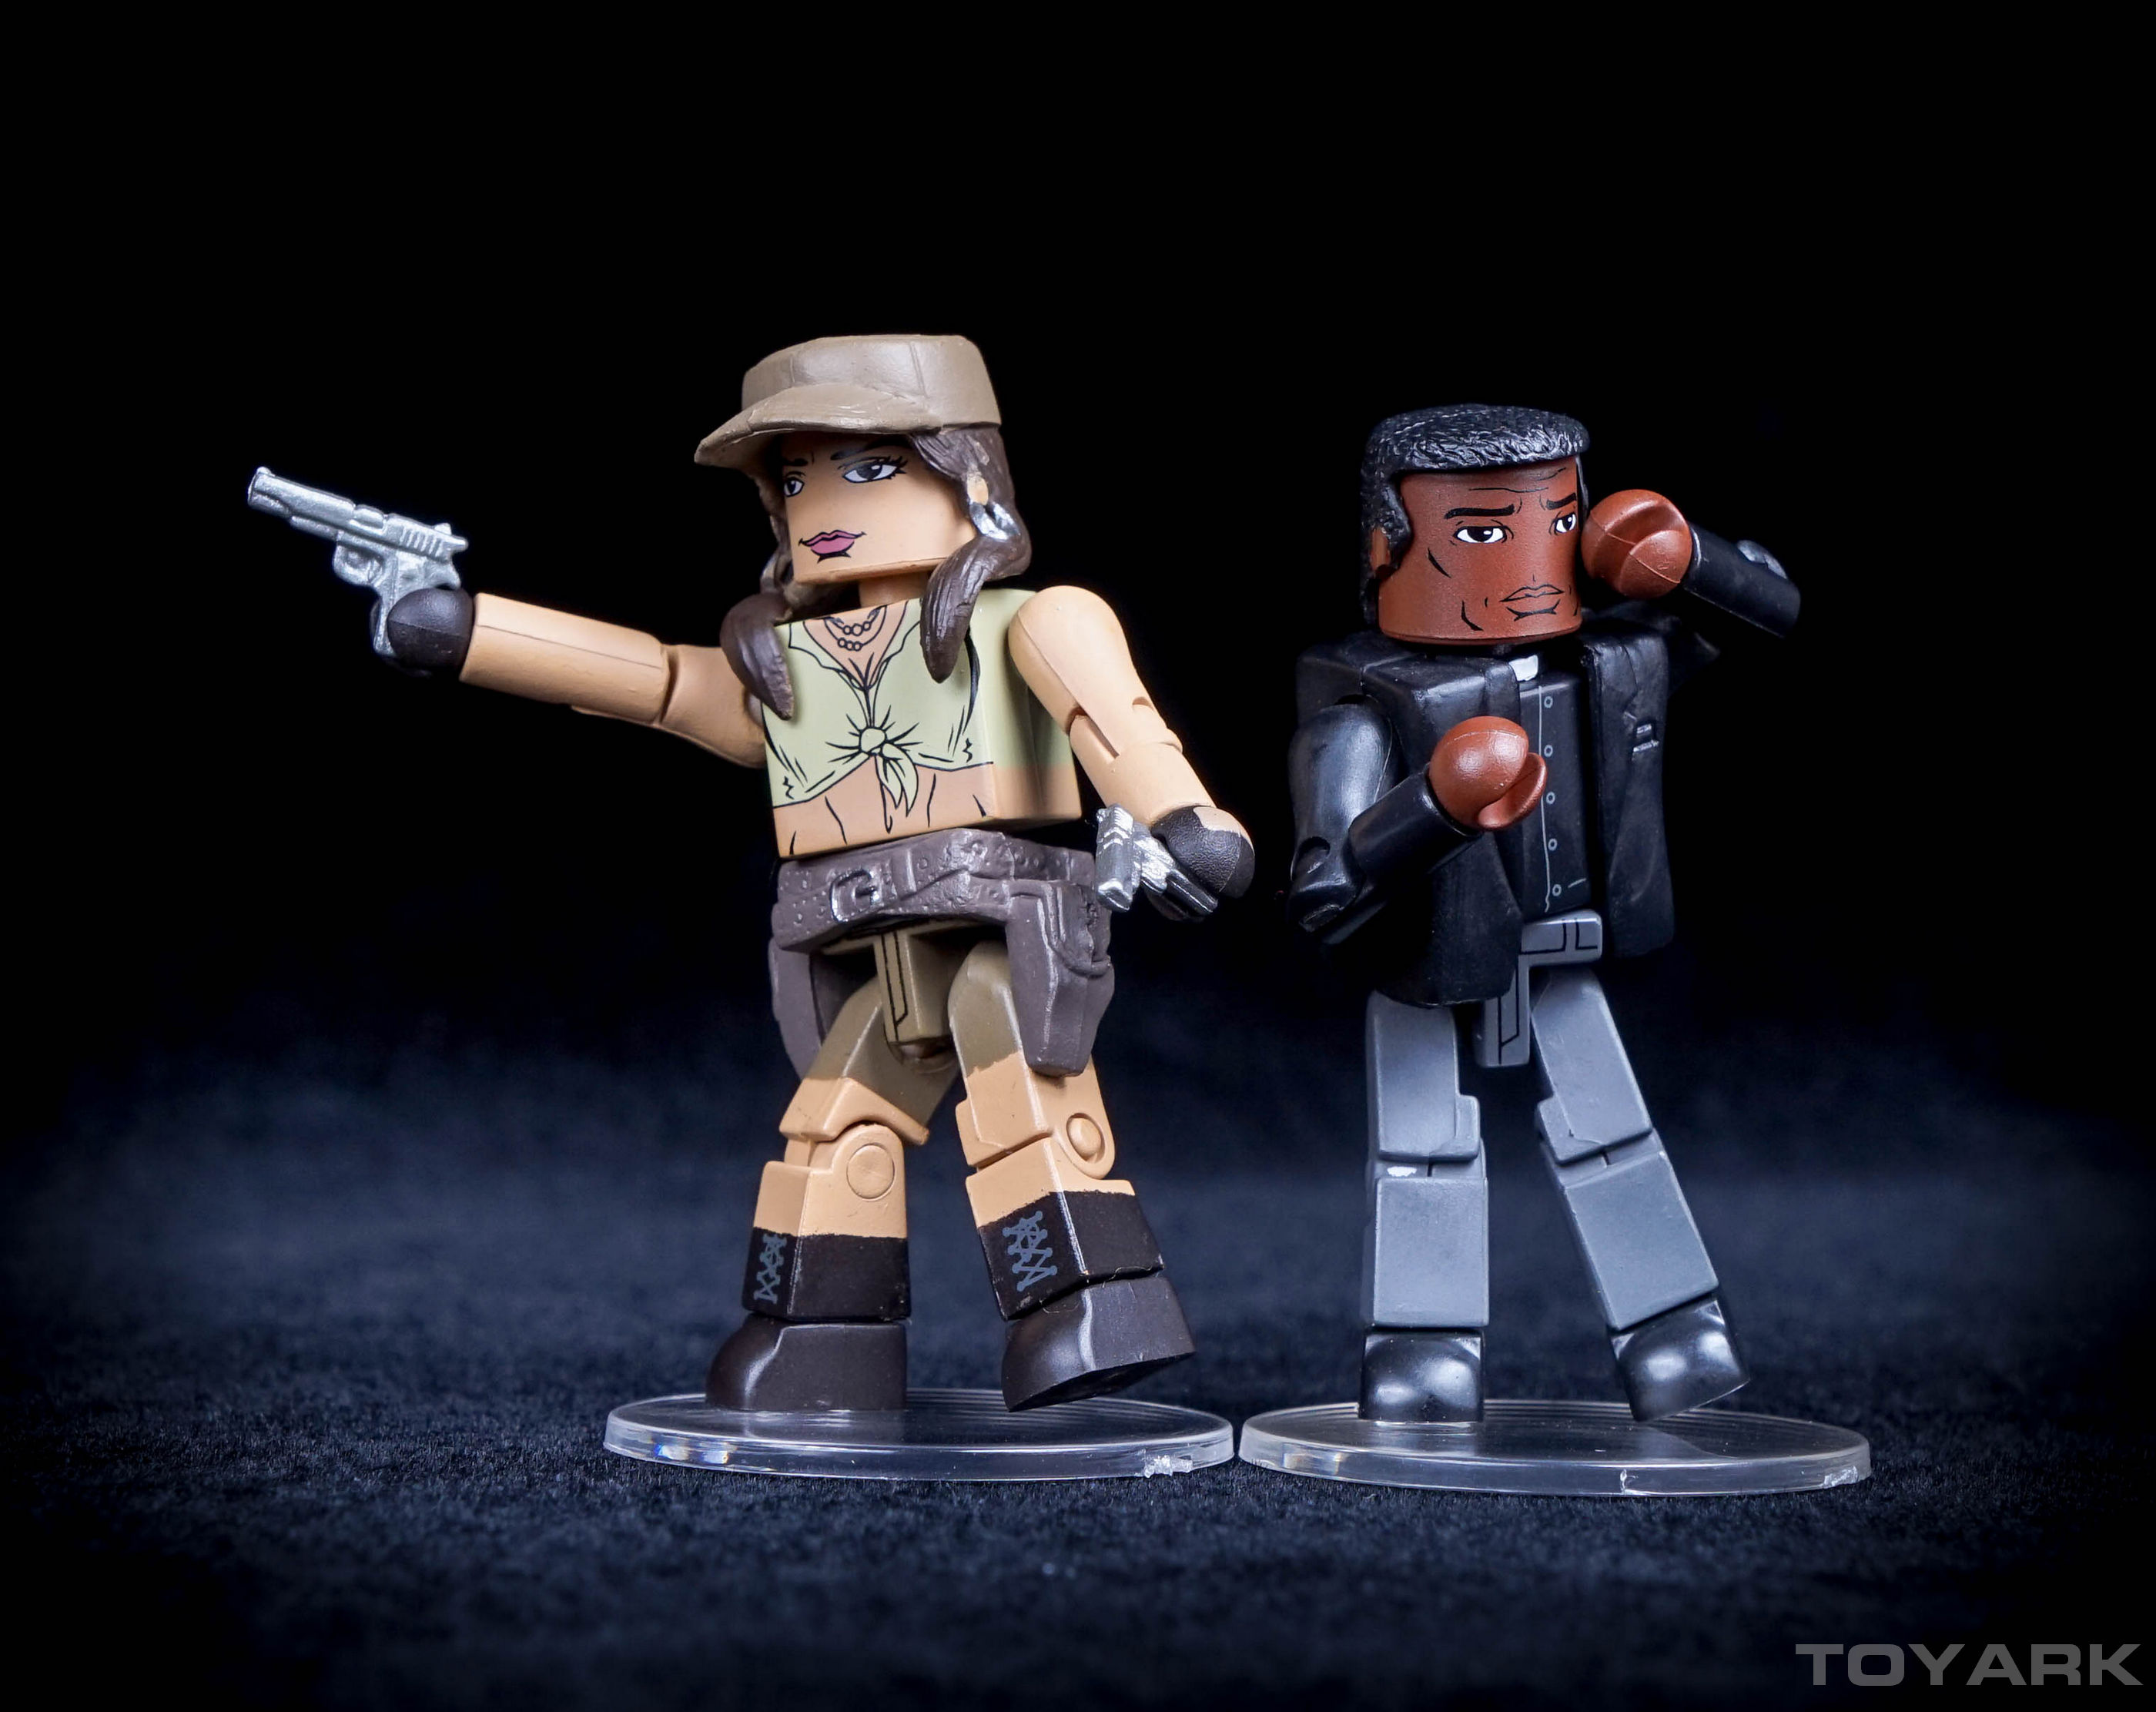 http://news.toyark.com/wp-content/uploads/sites/4/2015/11/Walking-Dead-S8-Minimates-094.jpg